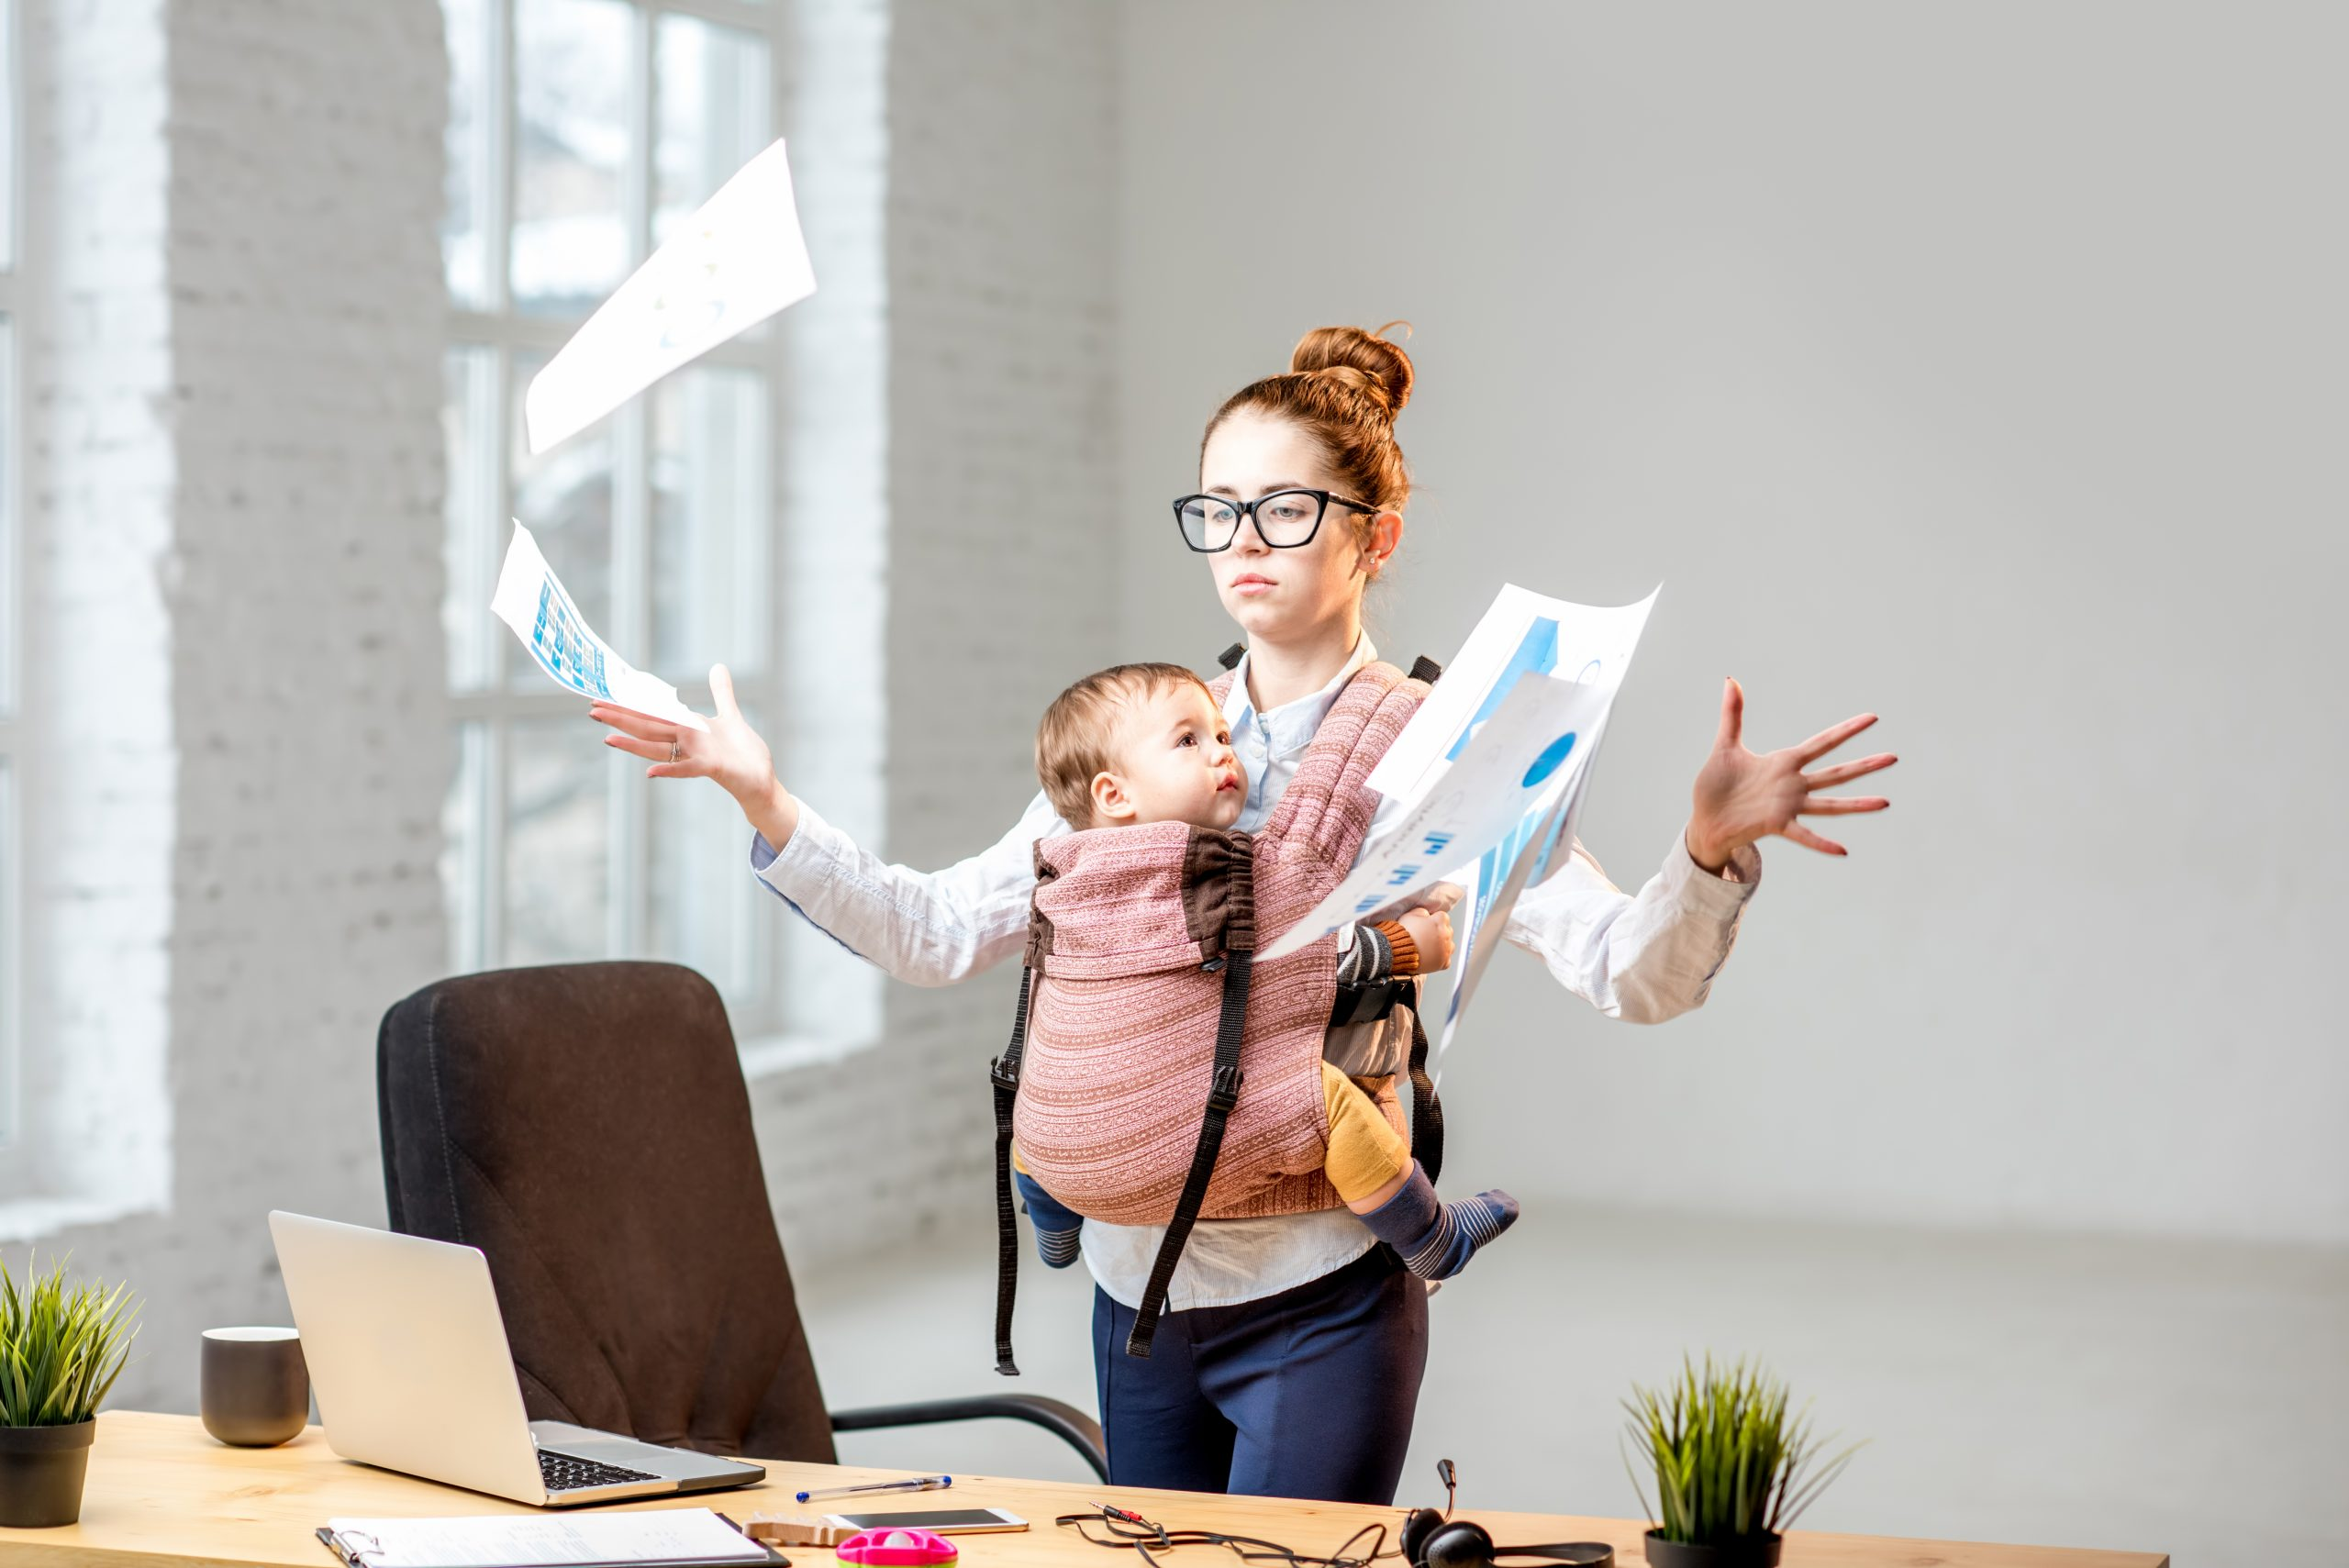 Multitasking and exhausted businesswoman throwing up a documents standing with her baby son during the work at the office